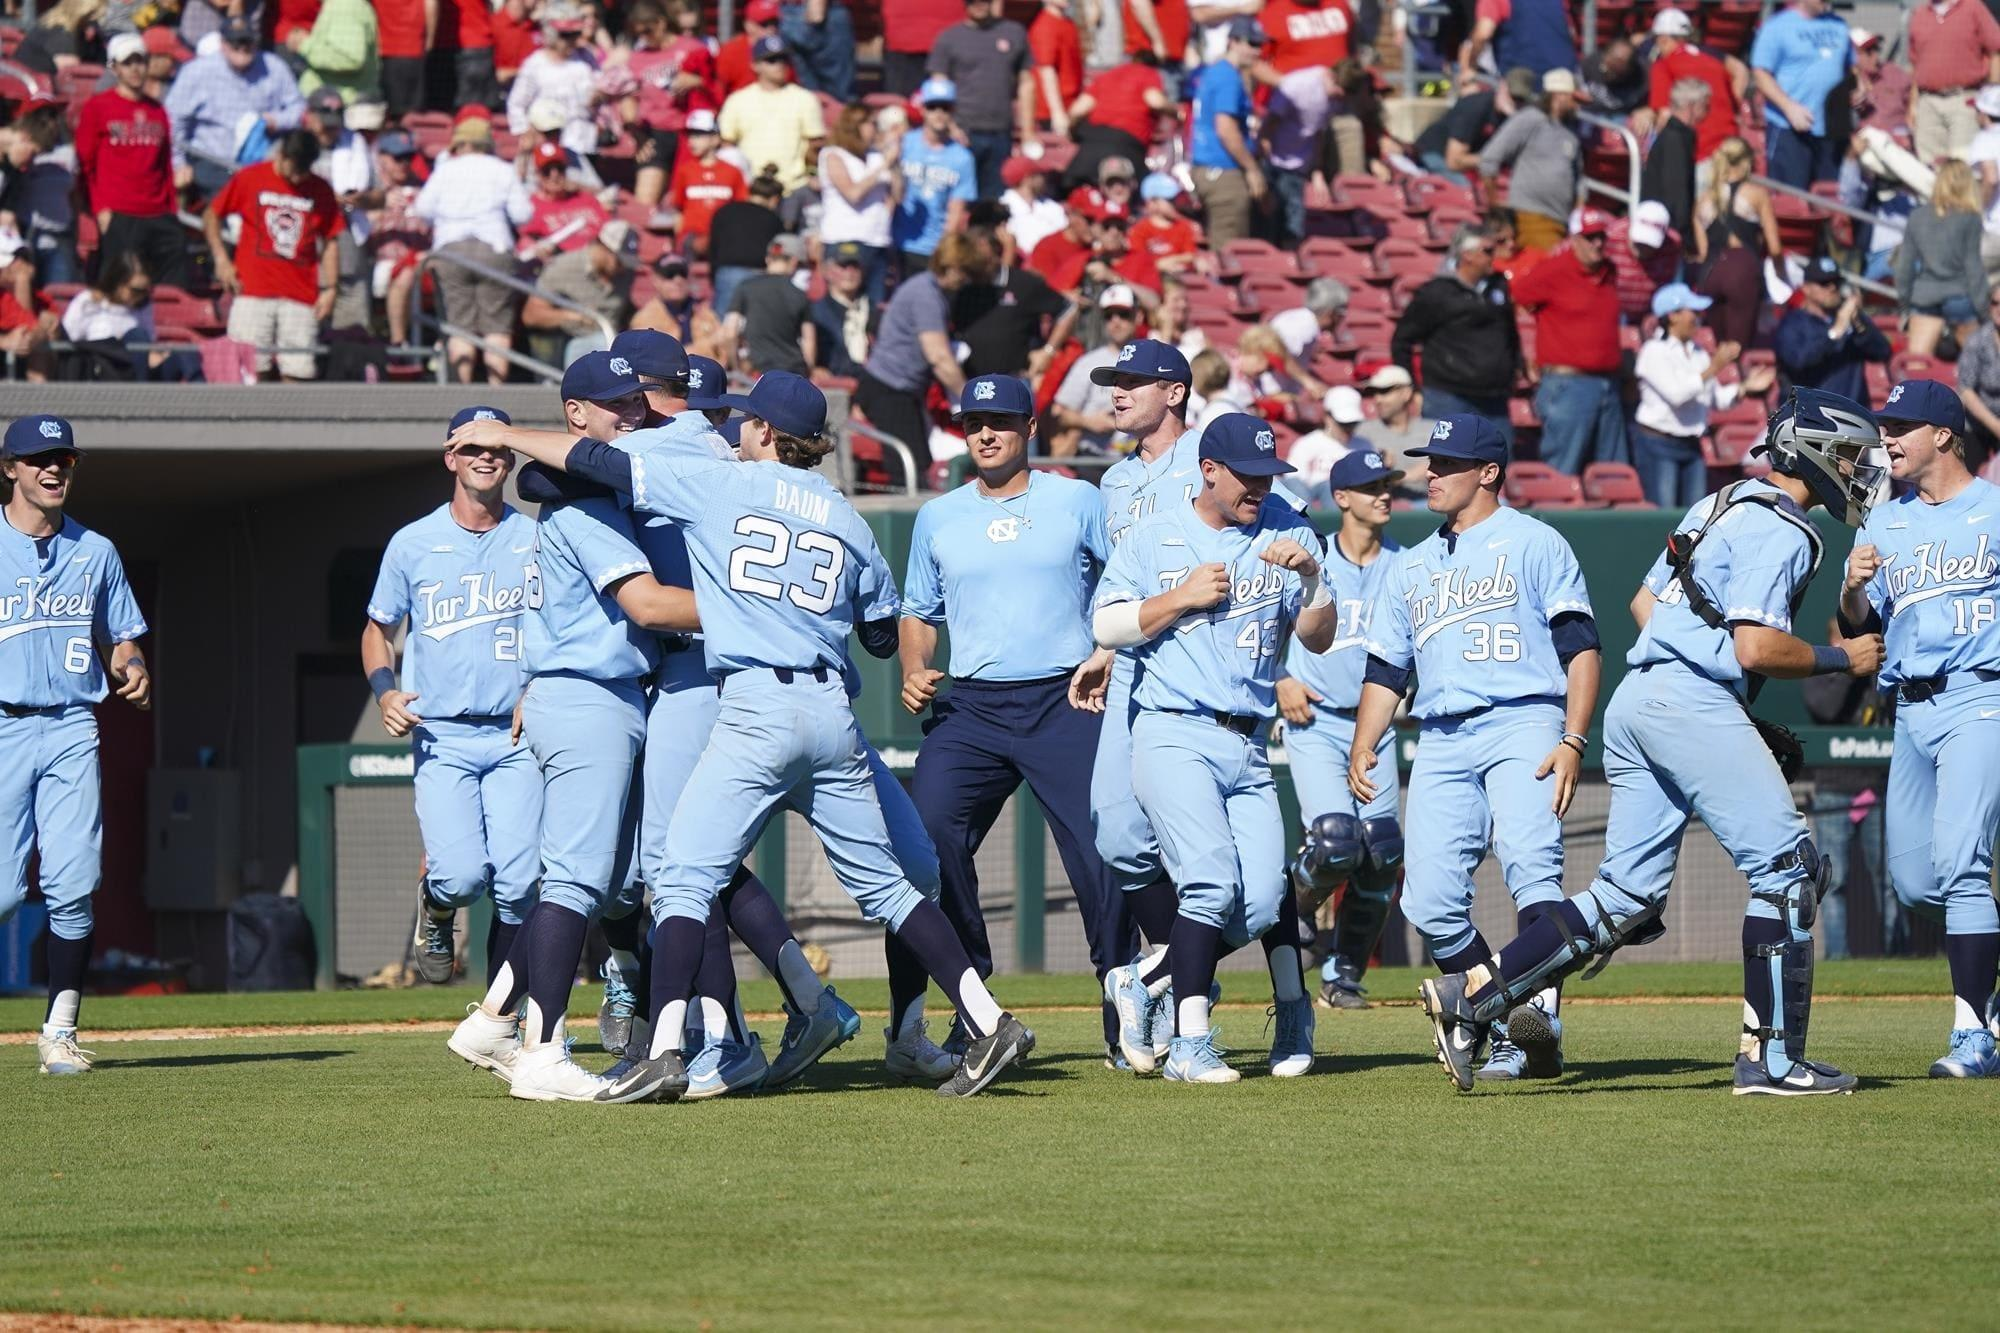 UNC sweeps rival NC State in Raleigh for first time in